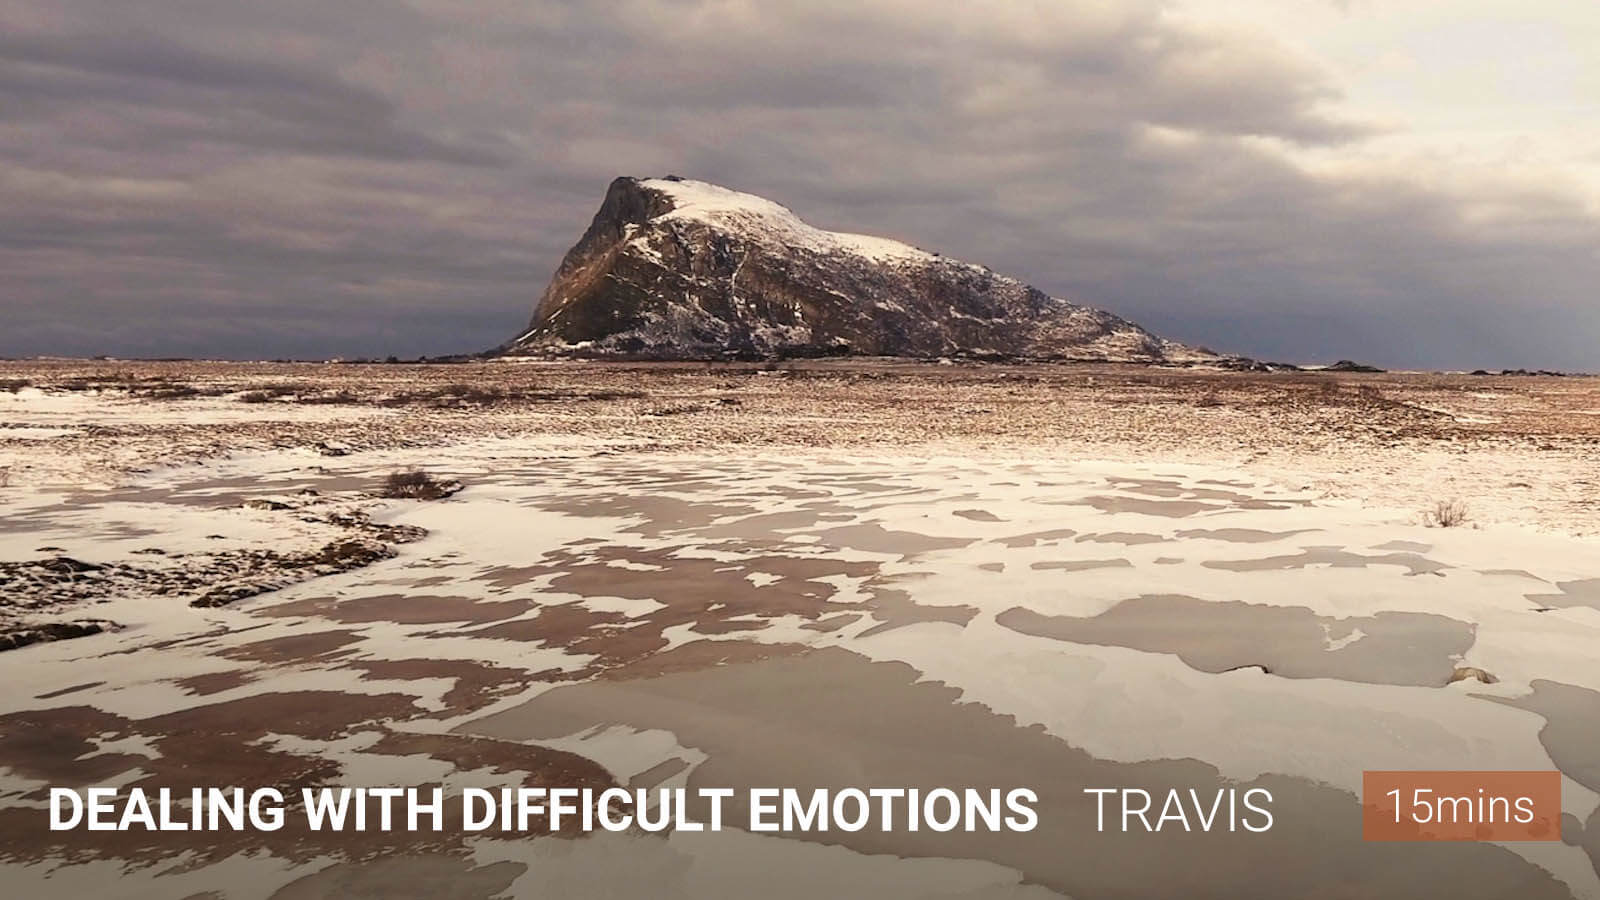 dealing with difficult emotions meditation - travis eliot